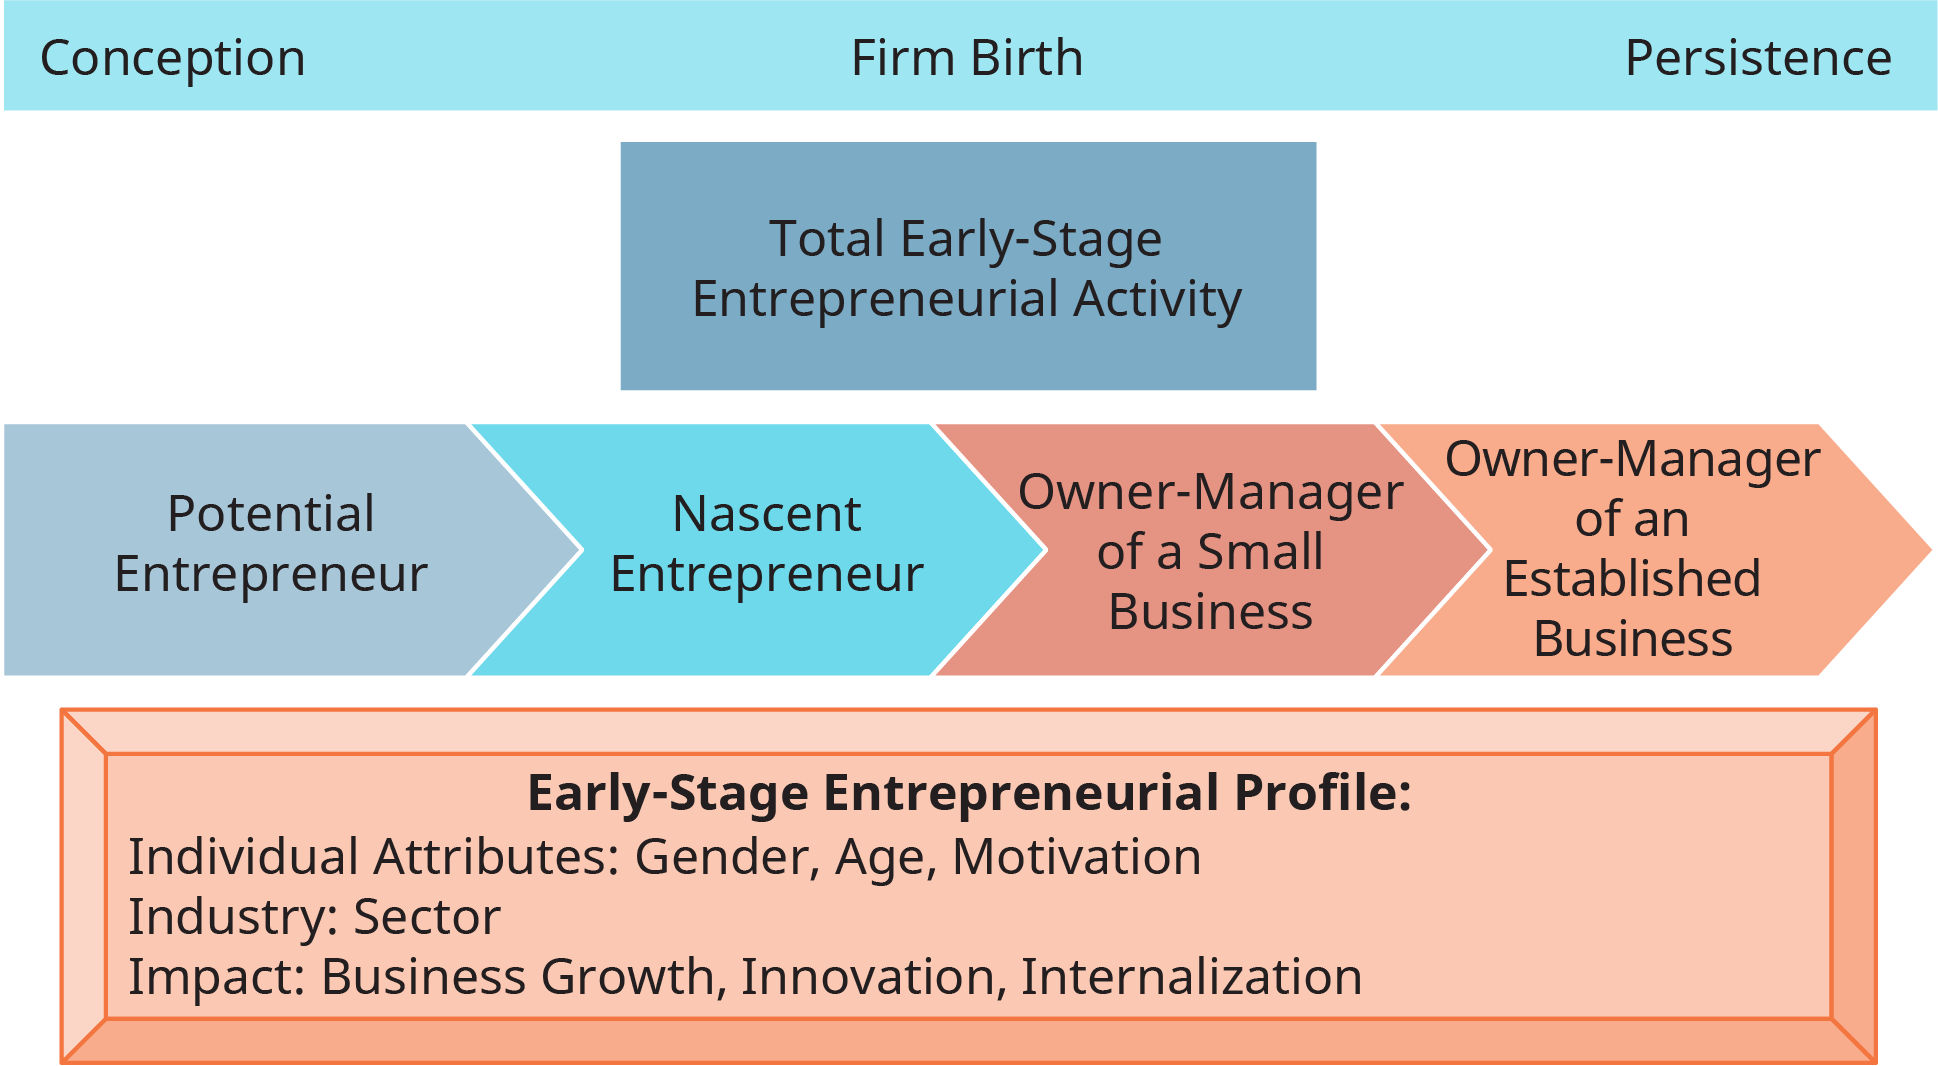 A diagram illustrates the model and measures of entrepreneurial activity.